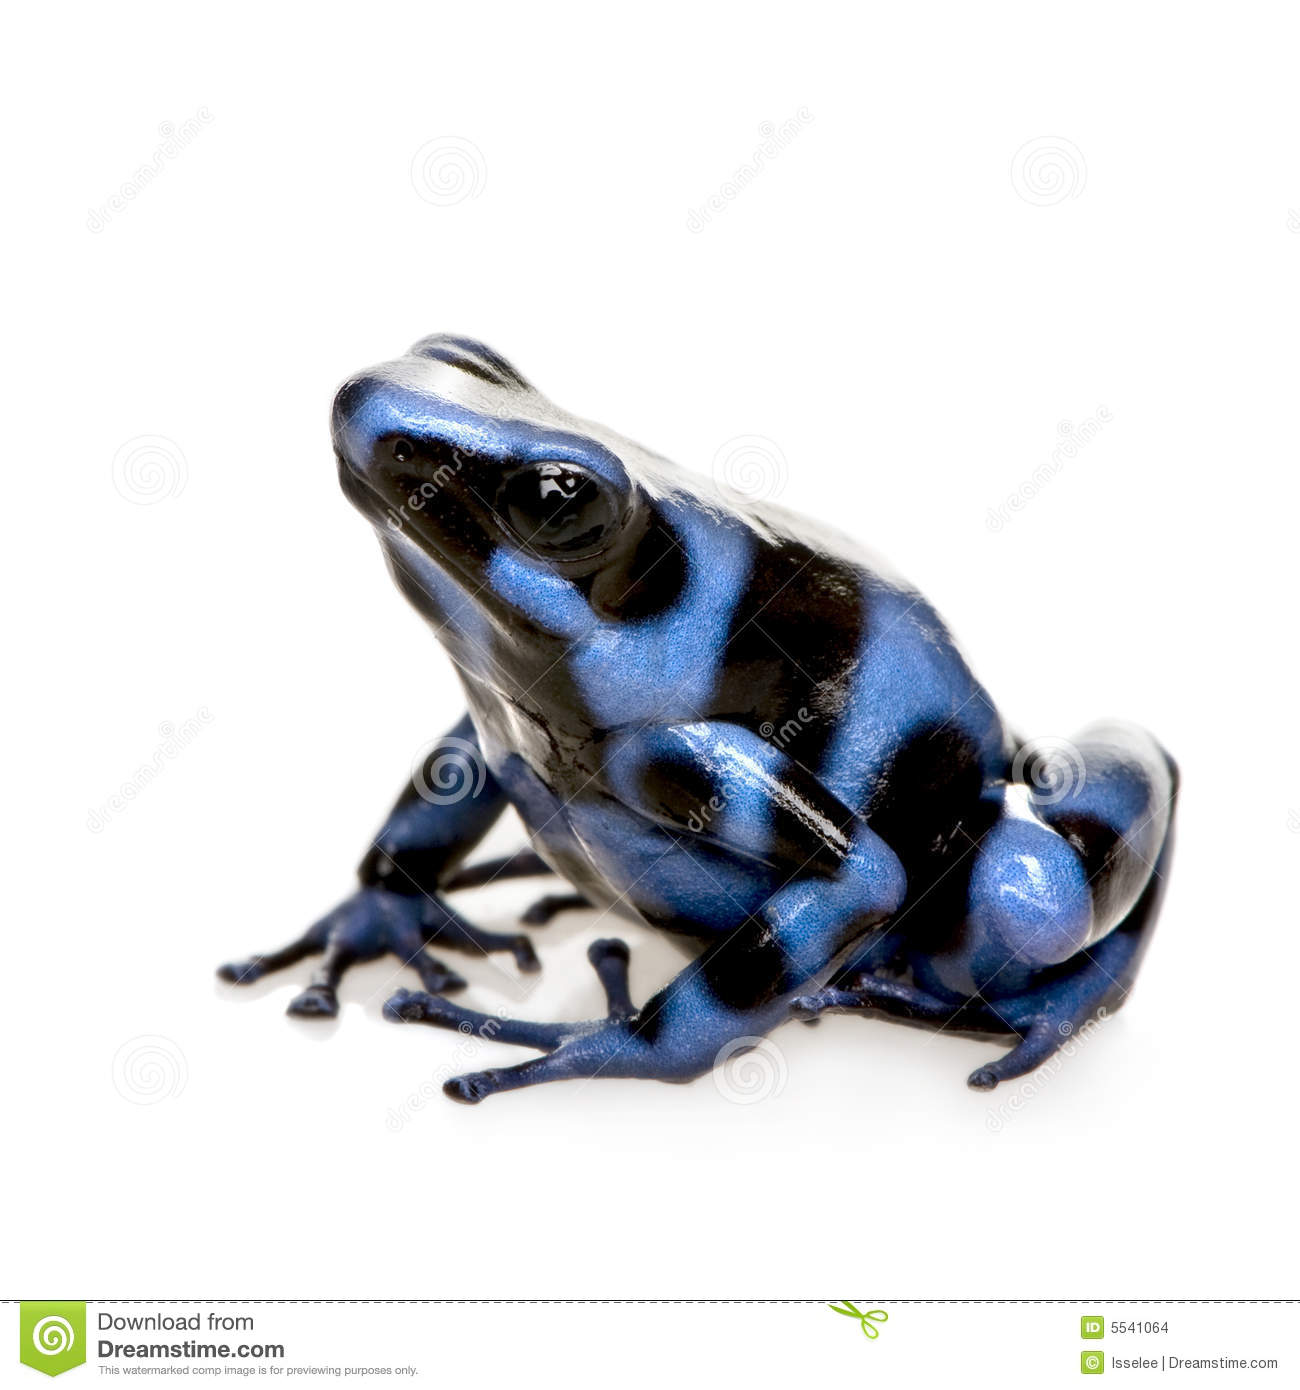 Blue Poison Dart Frog clipart #5, Download drawings